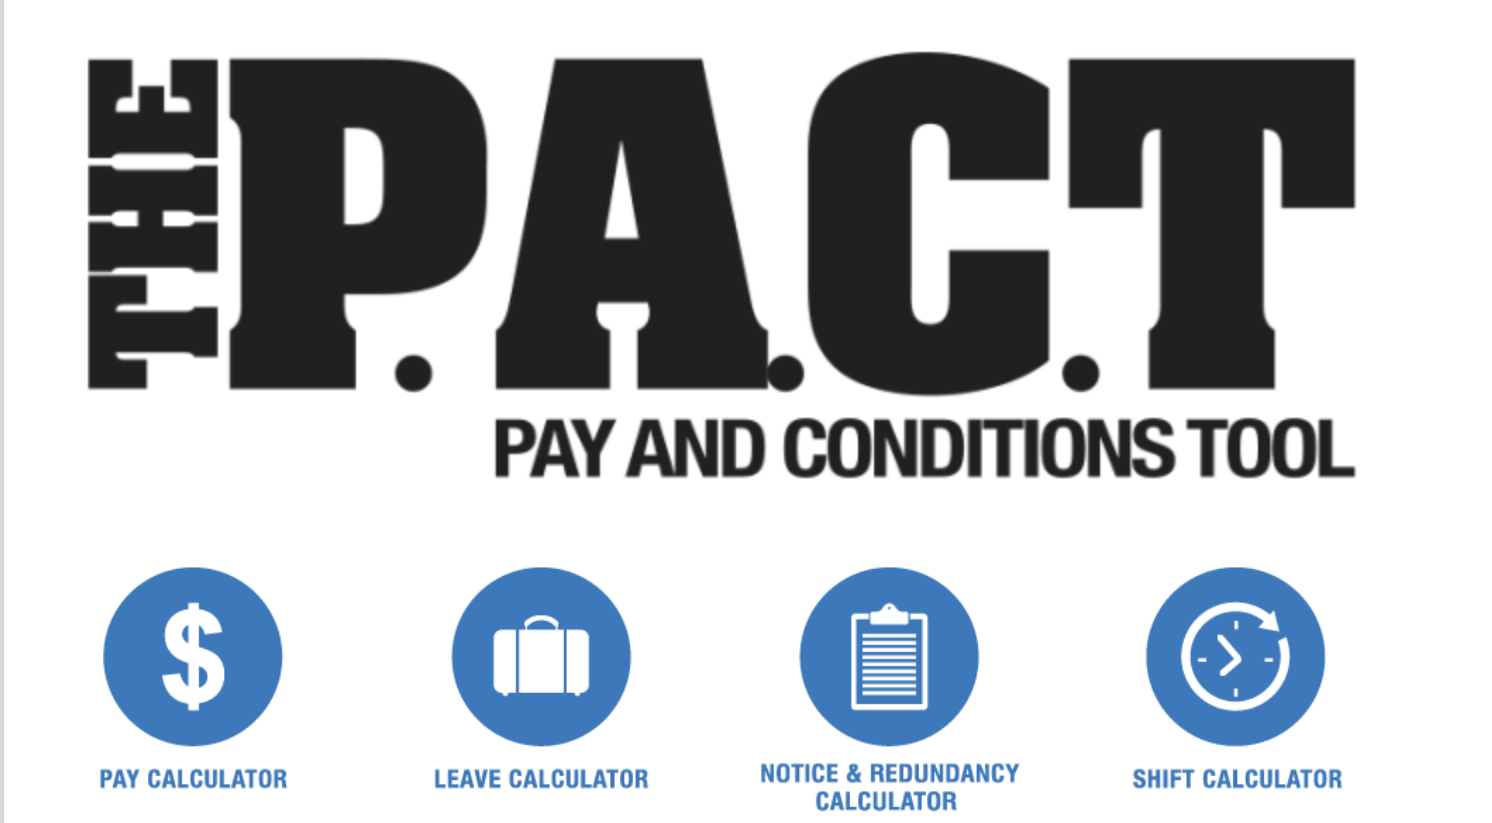 Make Sure You're Getting Paid Correctly With The PACT!